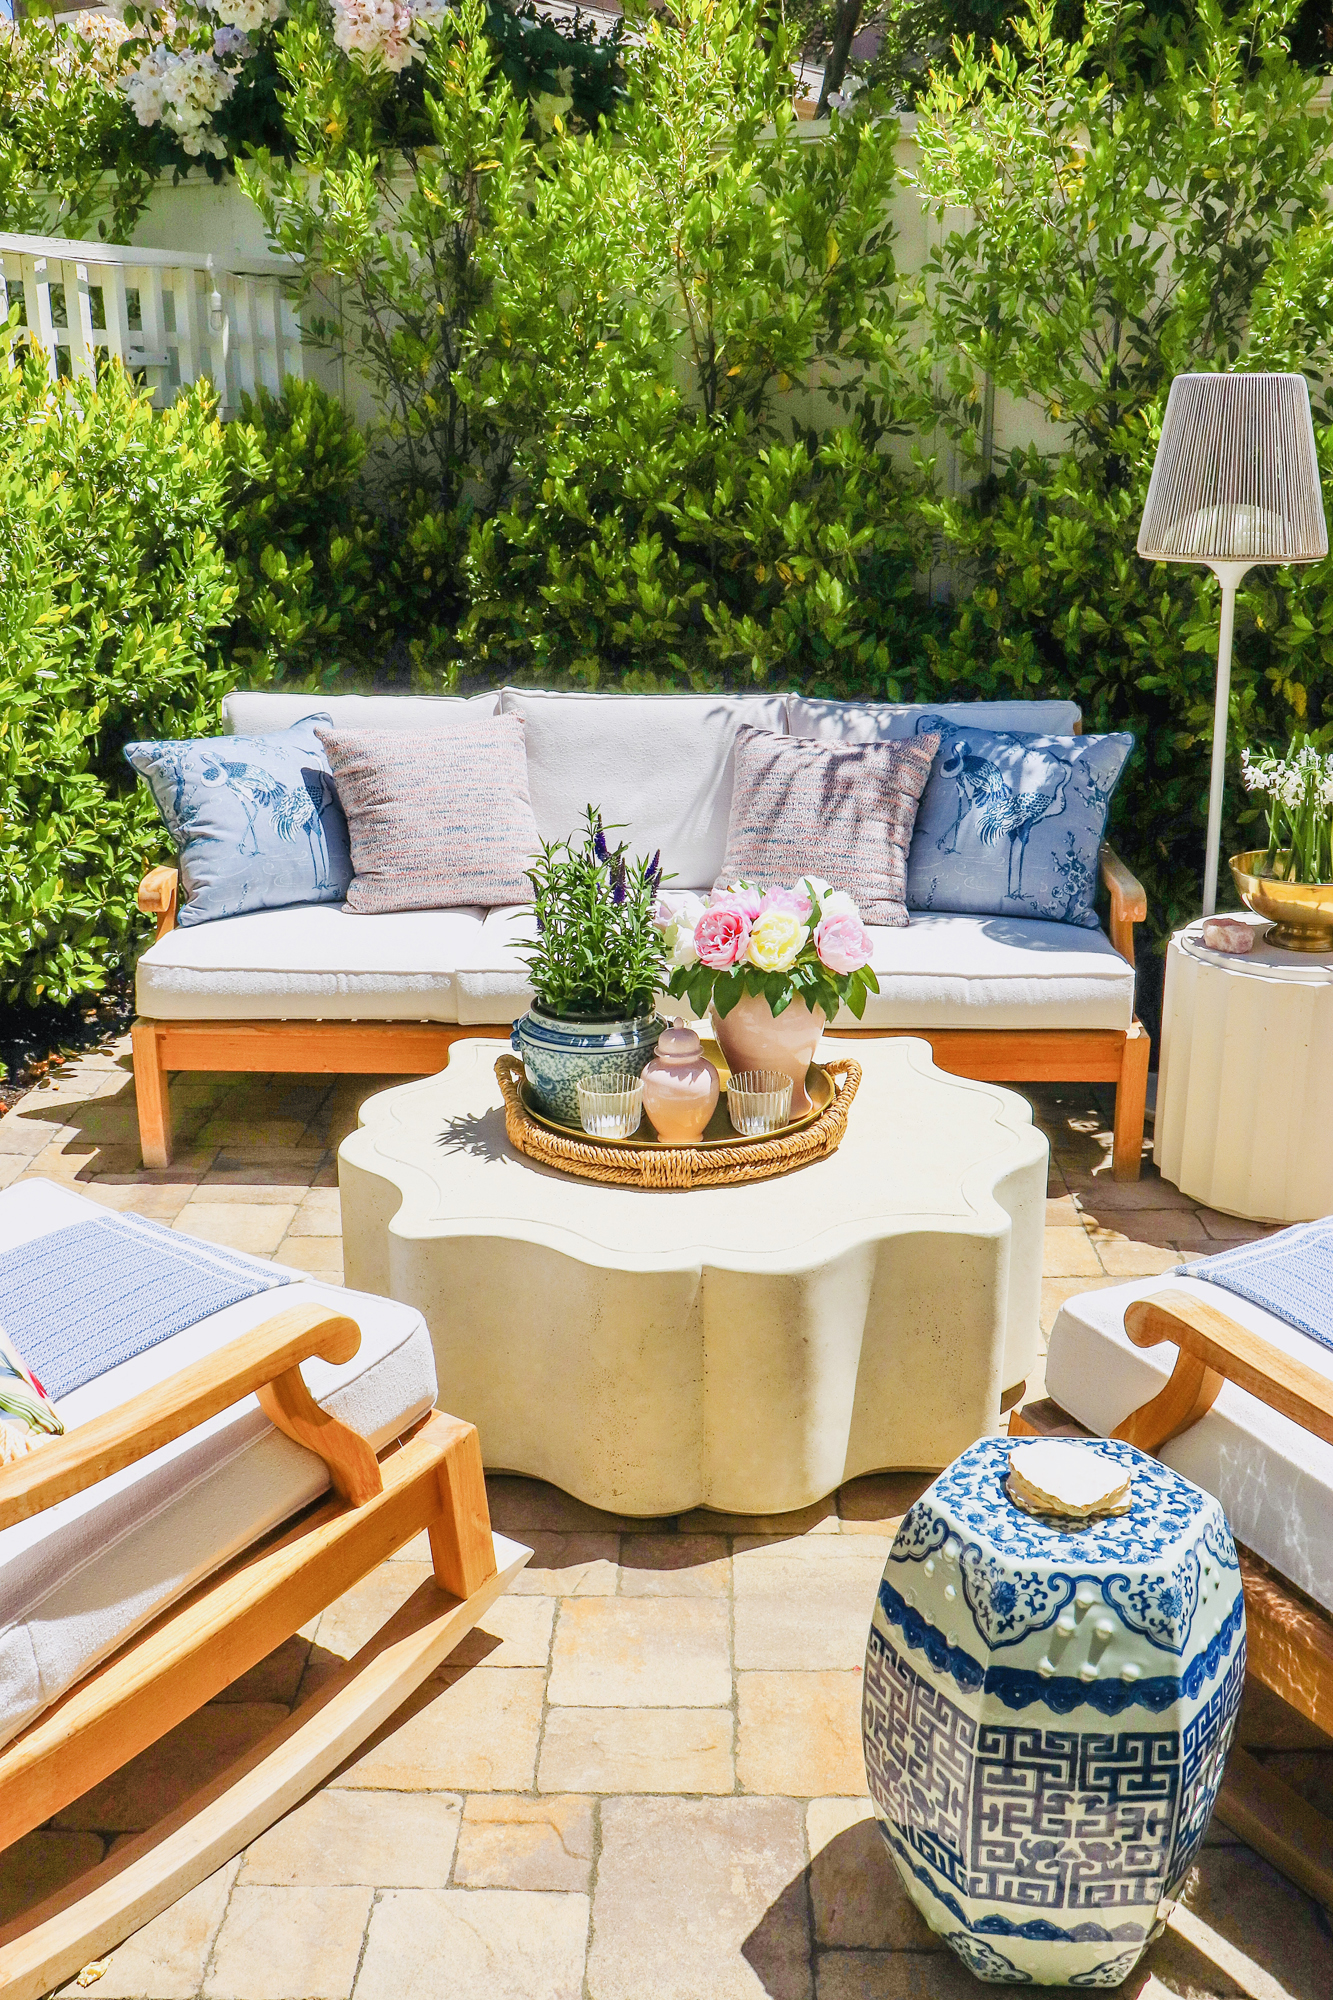 Frontgate Memorial Day Sale - up to 50% off. So many great outdoor decor, indoor decor, rugs, outdoor furniture, pillows, and more on sa